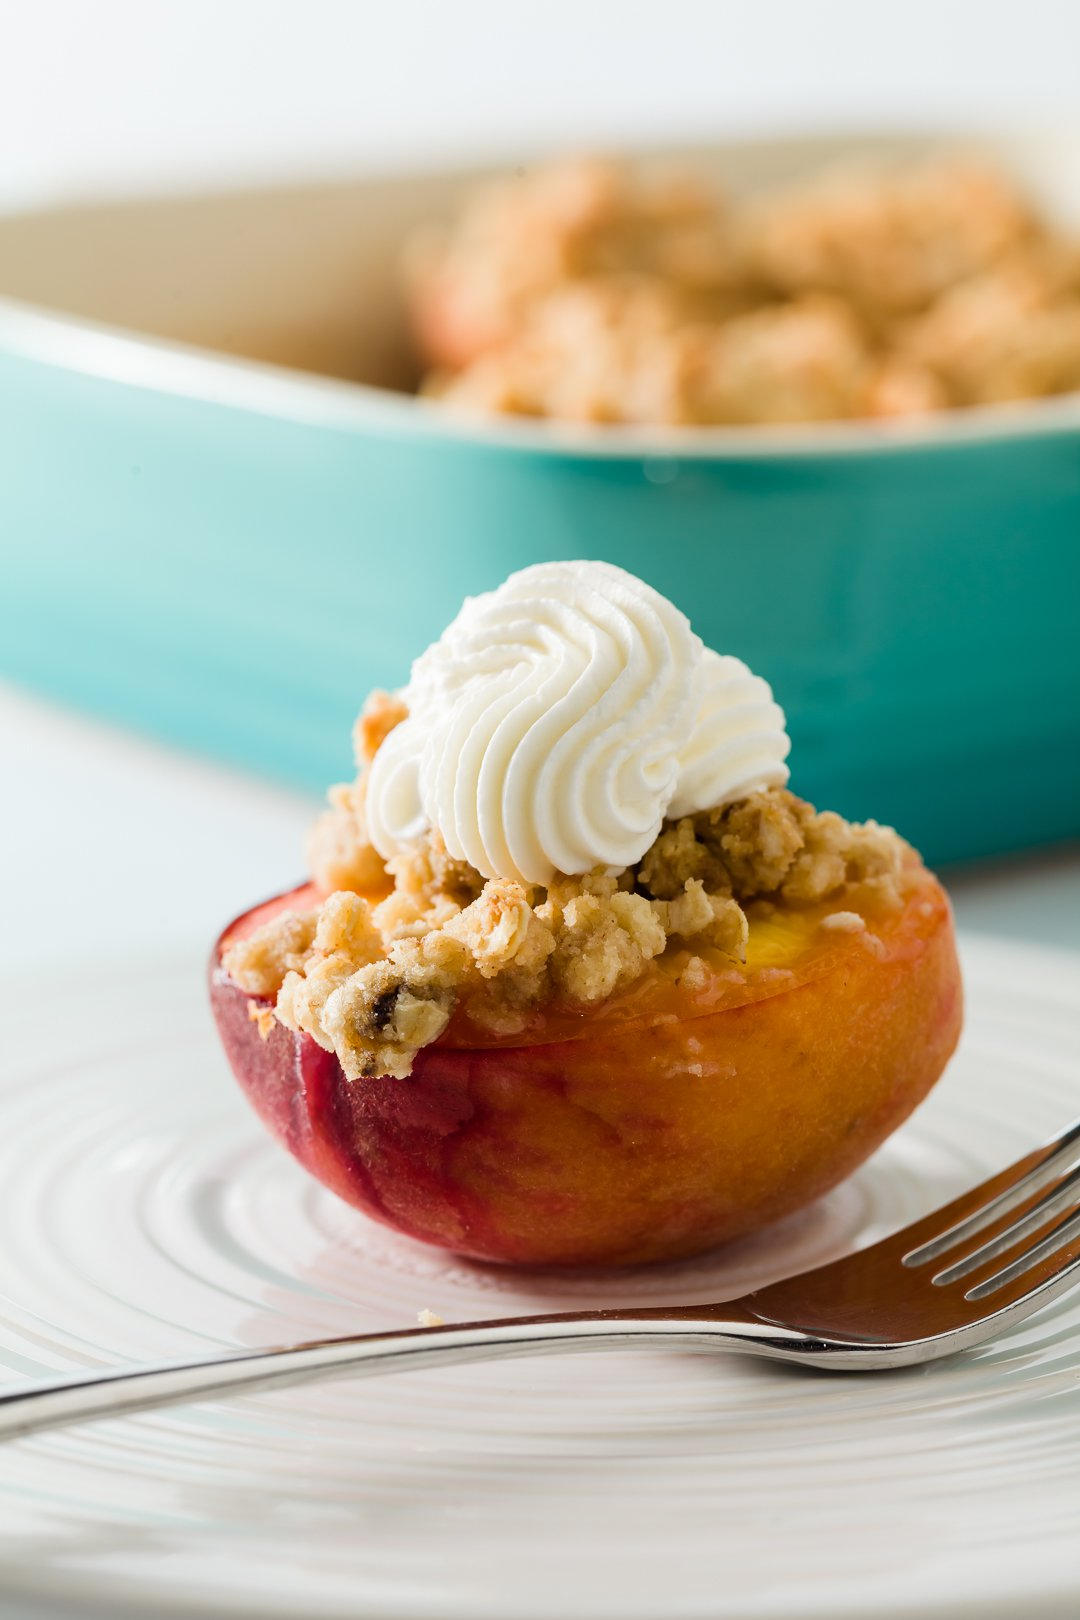 Baked peach with crumb topping and whipped cream